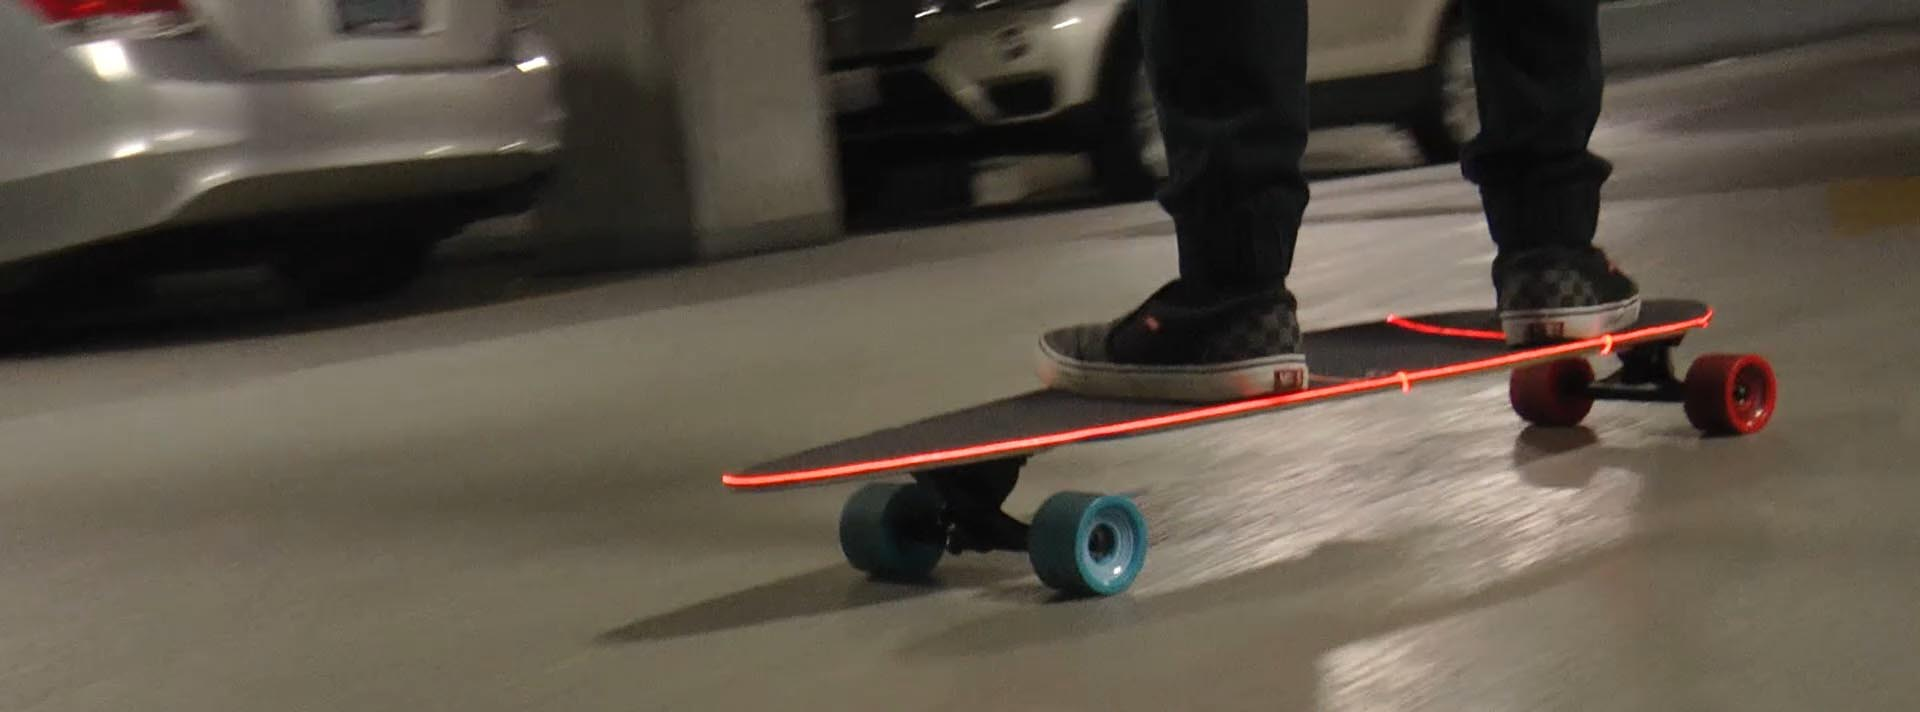 laser wire integrated onto skateboard